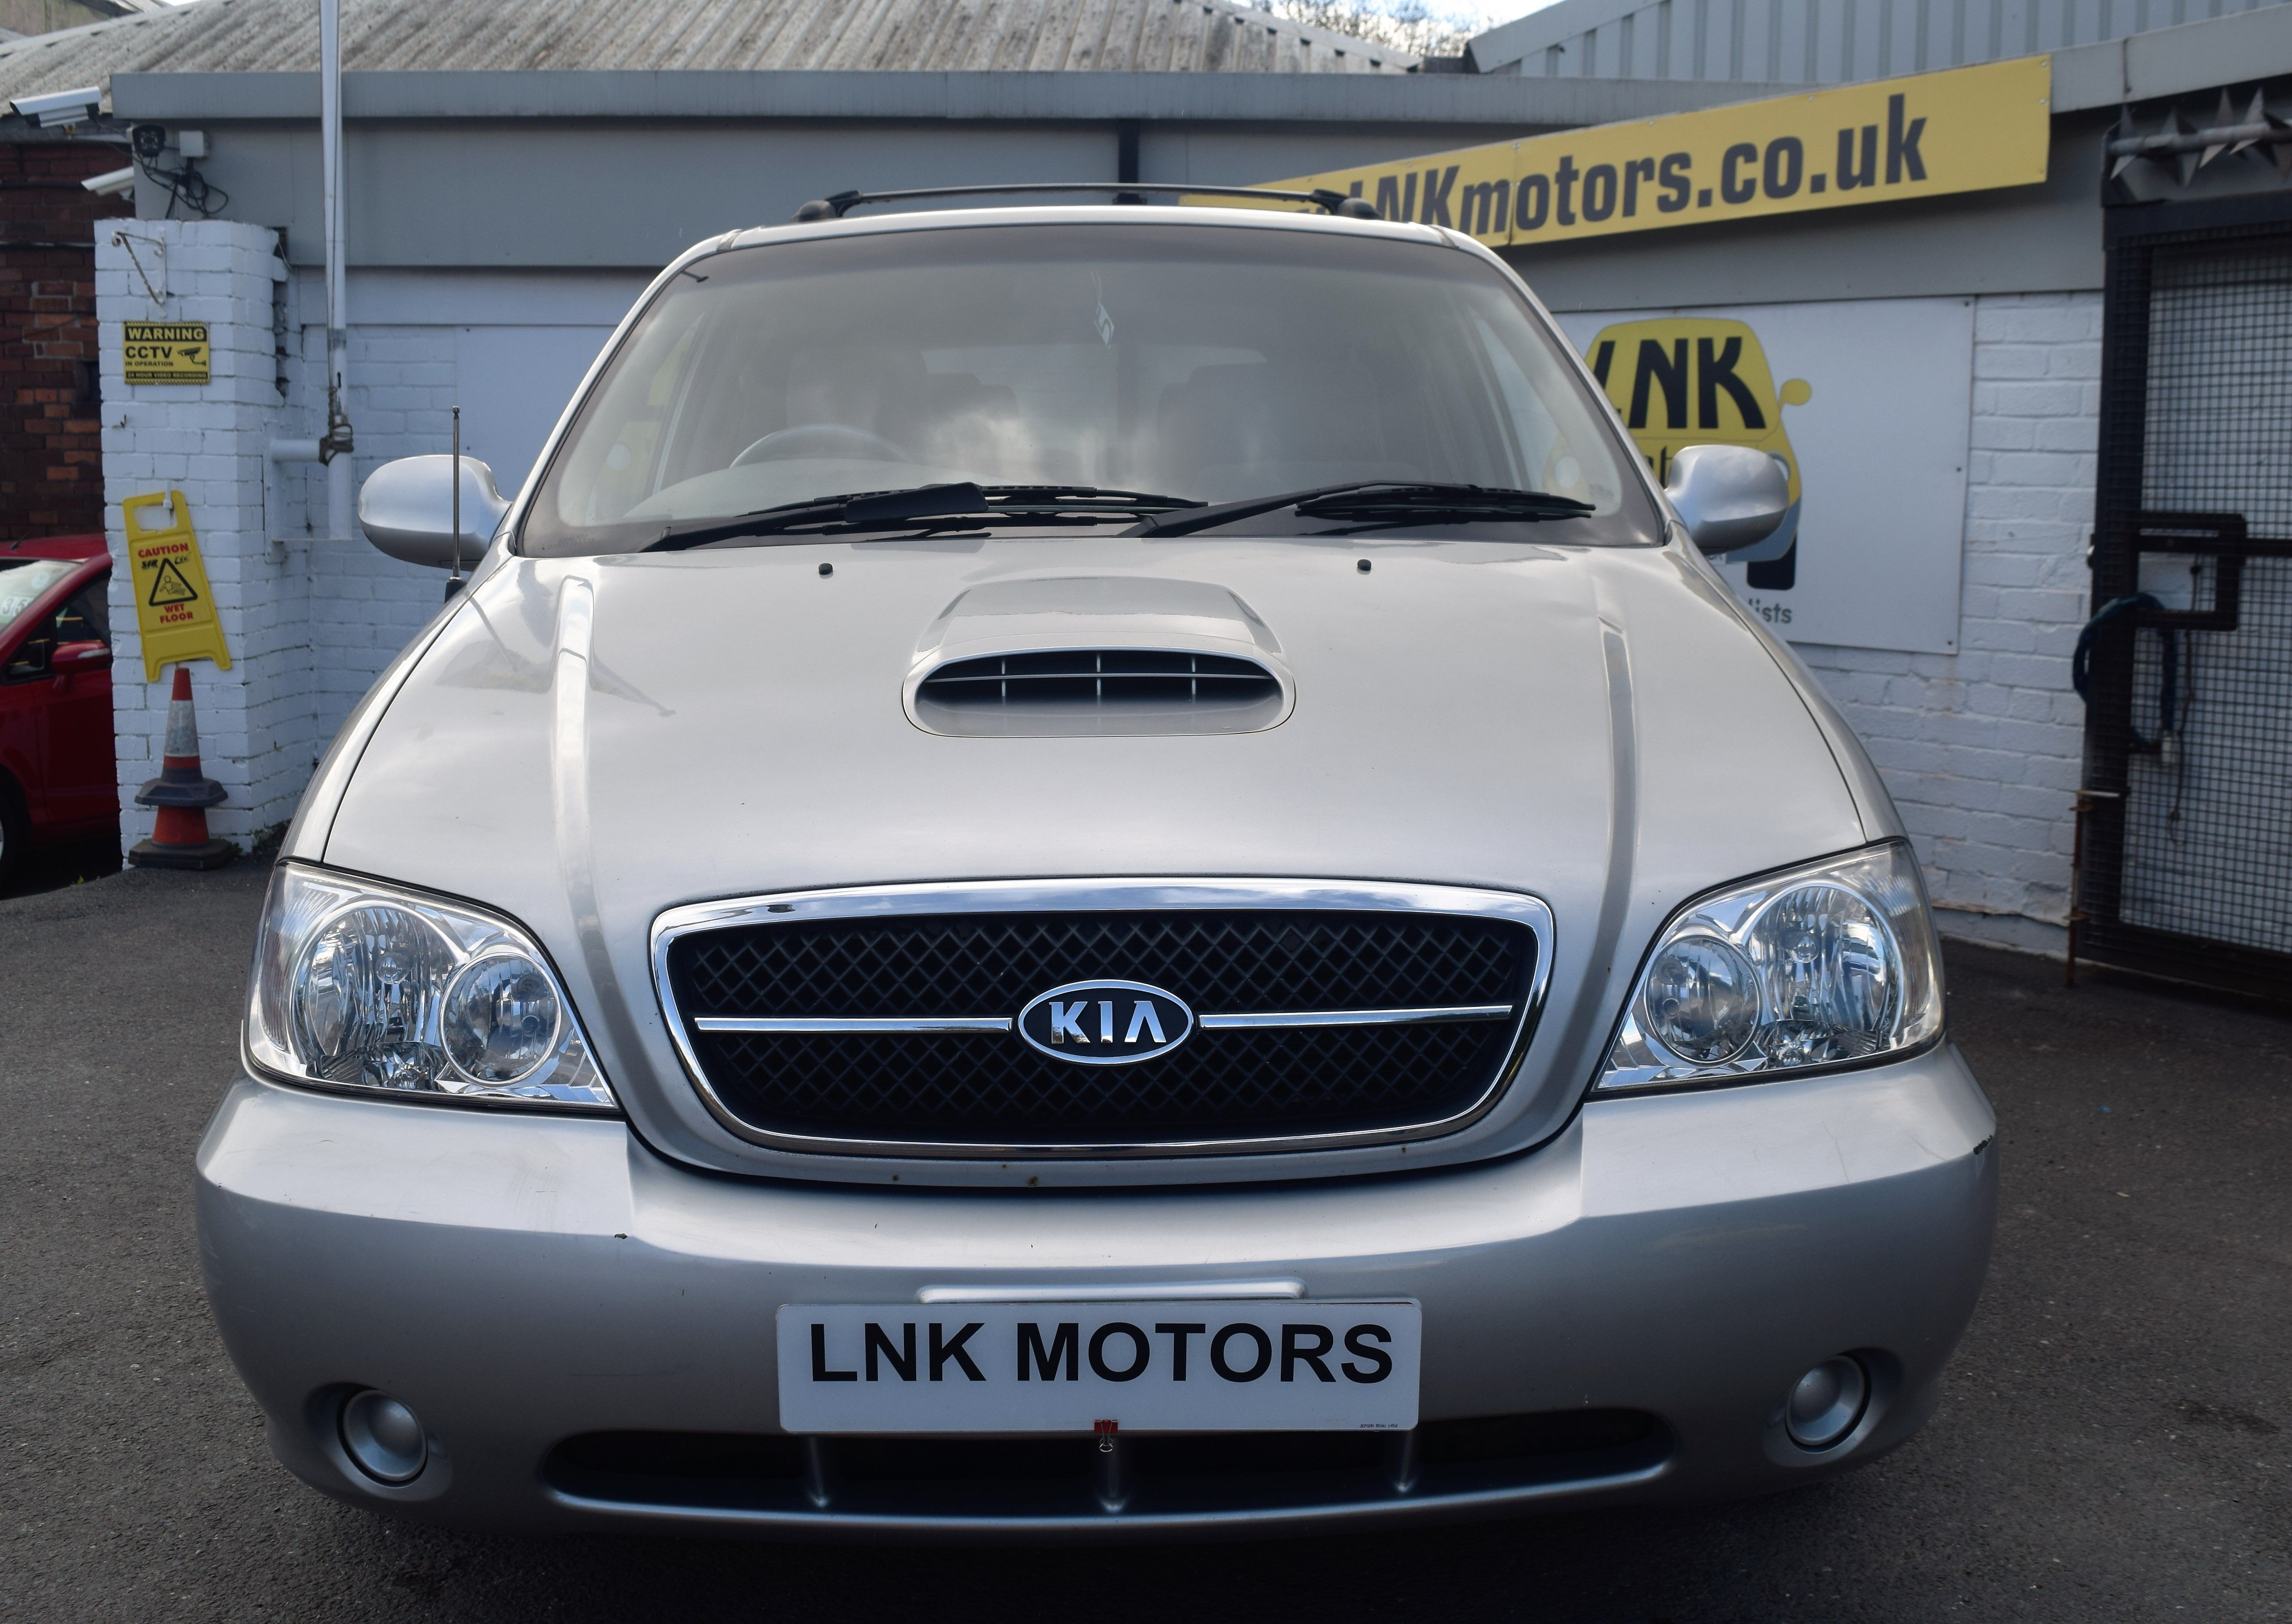 used motors co ceed local leicester leicestershire for pro kia cars in sale uk